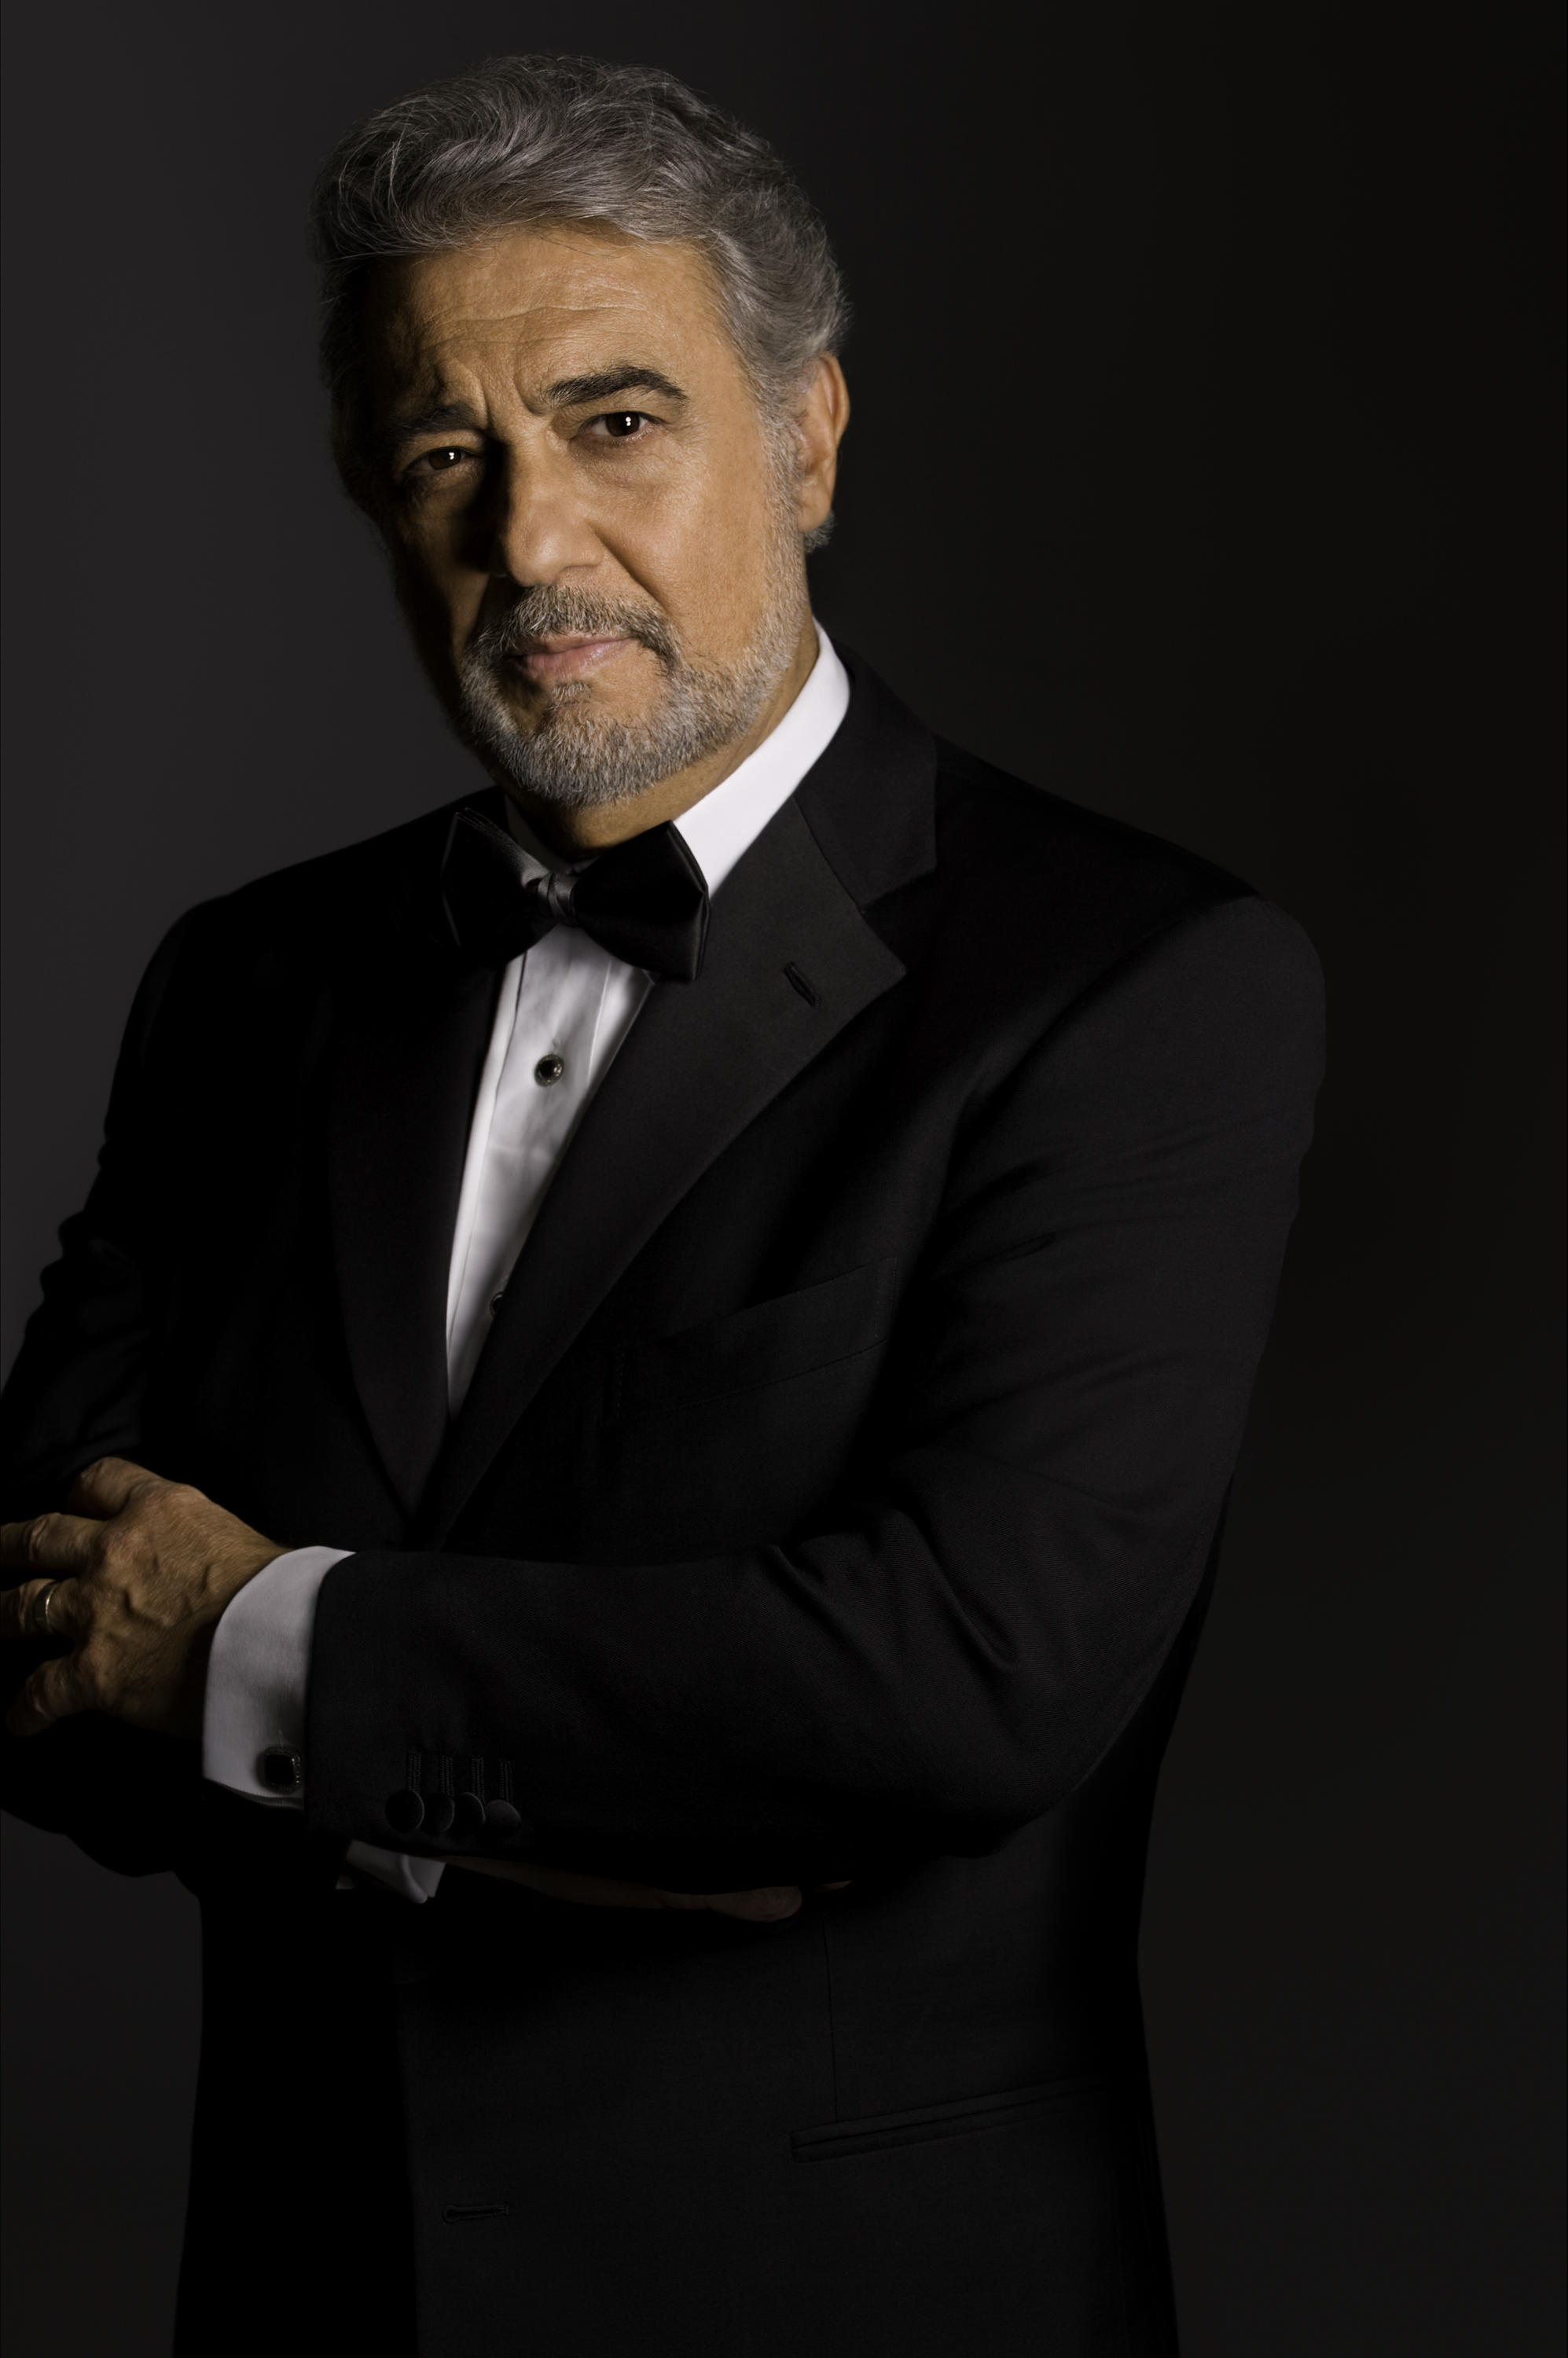 The King of the Opera, Placido Domingo, opened the Dubai Opera, designed by Atkins 87